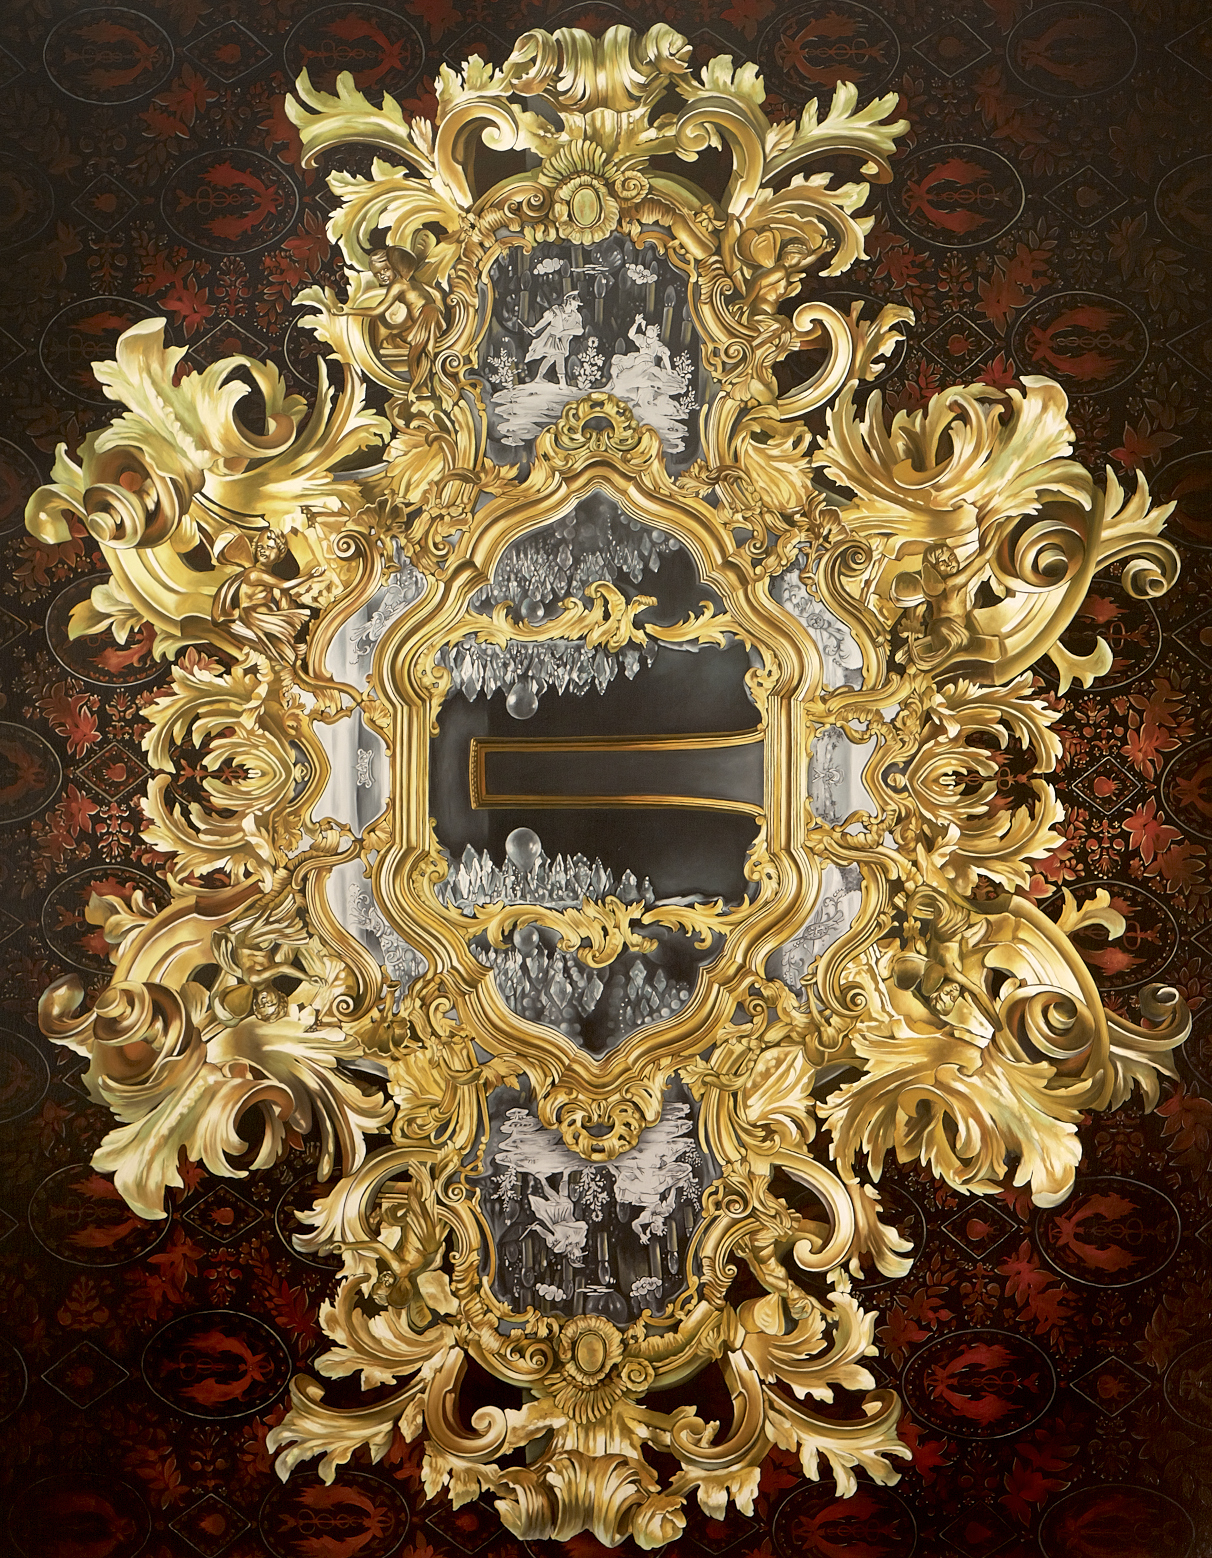 "THE VOLUPTUOUS HORROR OF METAPHOR  66 x 52 inches, Oil on Canvas, 2011     A hyper-realistic mirrored world collides with the distorted reflections of temptation. Echoes of riches glistening, this heavily gilded Rococo frame holds all the decadence of mortality wasted; a mirror of lies, with no true reflection.  This vacancy can signify death, but it can also signal the need for a profound shift in priorities, the transitioning into a more fully formed sense of the self, a self view not dictated by the reflection of others, rather, a self realization generated from within.            /* Style Definitions */ table.MsoNormalTable 	{mso-style-name:""Table Normal""; 	mso-tstyle-rowband-size:0; 	mso-tstyle-colband-size:0; 	mso-style-noshow:yes; 	mso-style-parent:""""; 	mso-padding-alt:0in 5.4pt 0in 5.4pt; 	mso-para-margin:0in; 	mso-para-margin-bottom:.0001pt; 	mso-pagination:widow-orphan; 	font-size:12.0pt; 	font-family:""Times New Roman""; 	mso-ascii-font-family:Cambria; 	mso-ascii-theme-font:minor-latin; 	mso-fareast-font-family:""Times New Roman""; 	mso-fareast-theme-font:minor-fareast; 	mso-hansi-font-family:Cambria; 	mso-hansi-theme-font:minor-latin; 	mso-bidi-font-family:""Times New Roman""; 	mso-bidi-theme-font:minor-bidi;}"